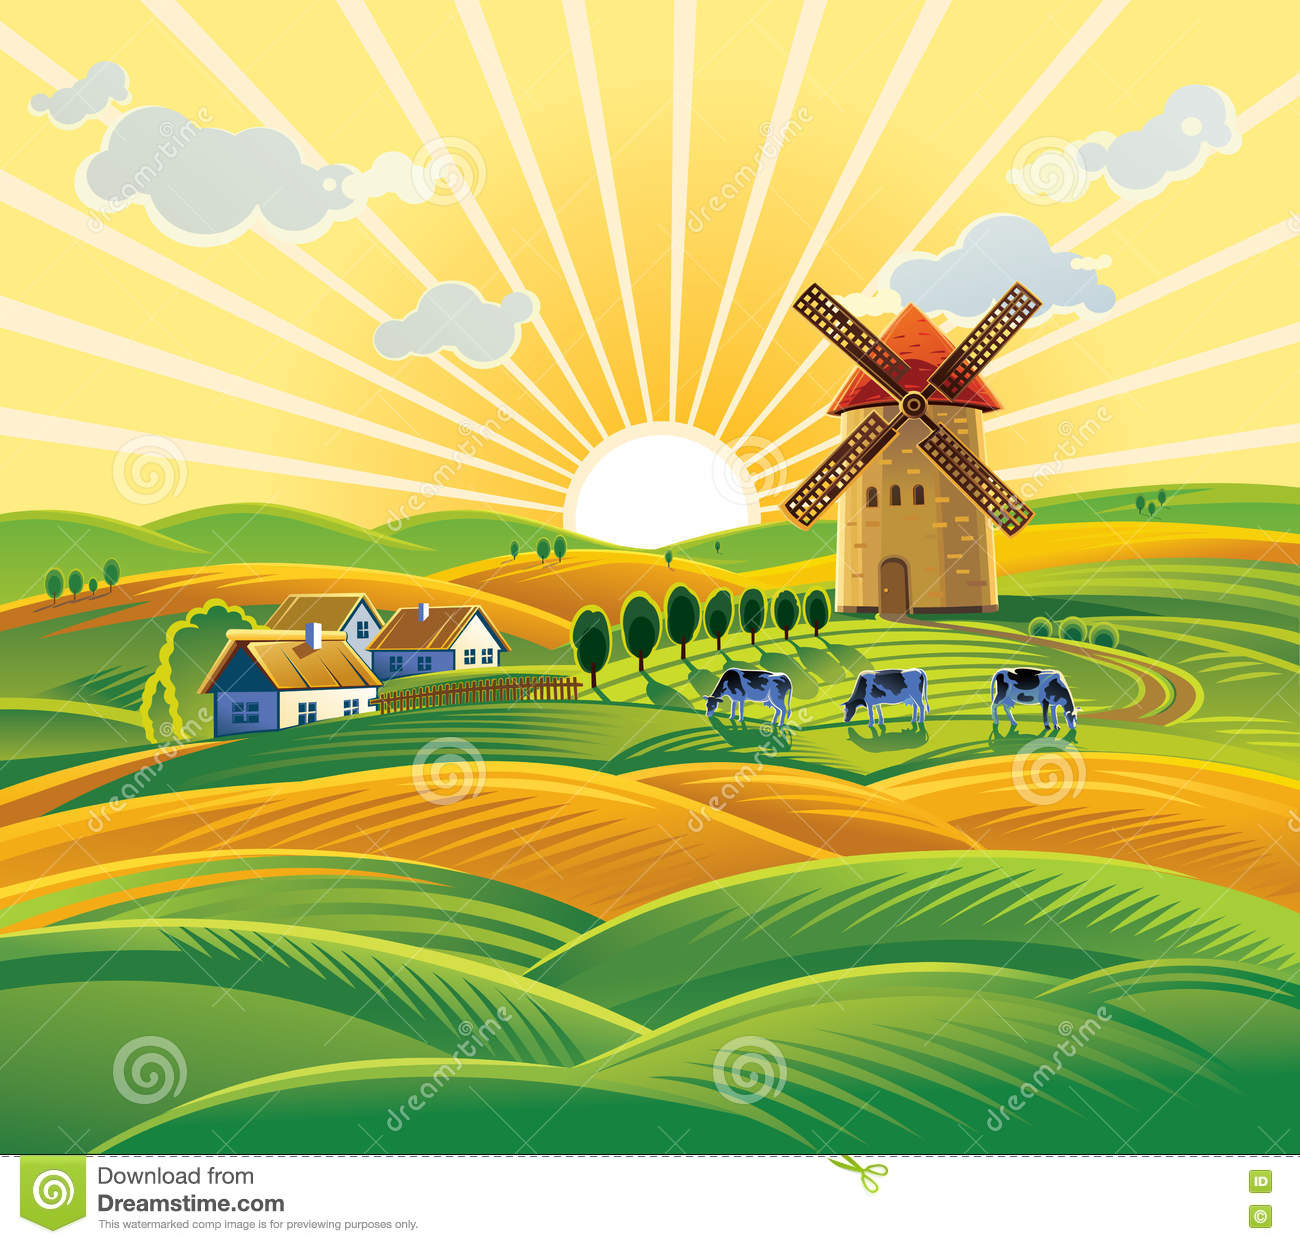 Rural Landscape With A Windmill. Stock Vector.